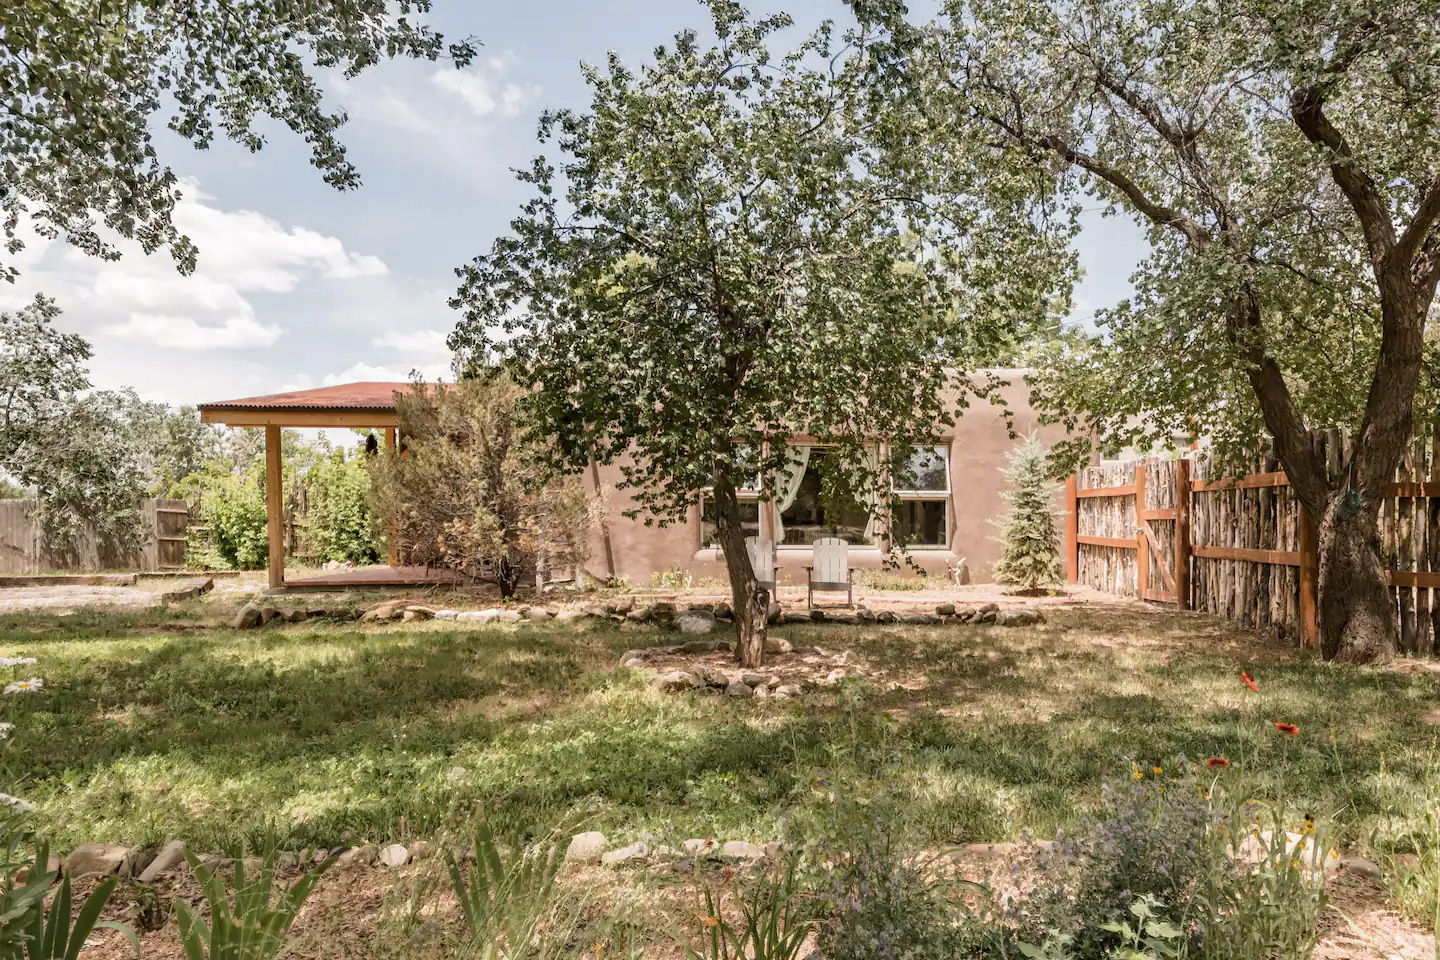 This traditional Adobe (earth clay) home is surrounded by orchards while interiors have a vintage 1970s vibe